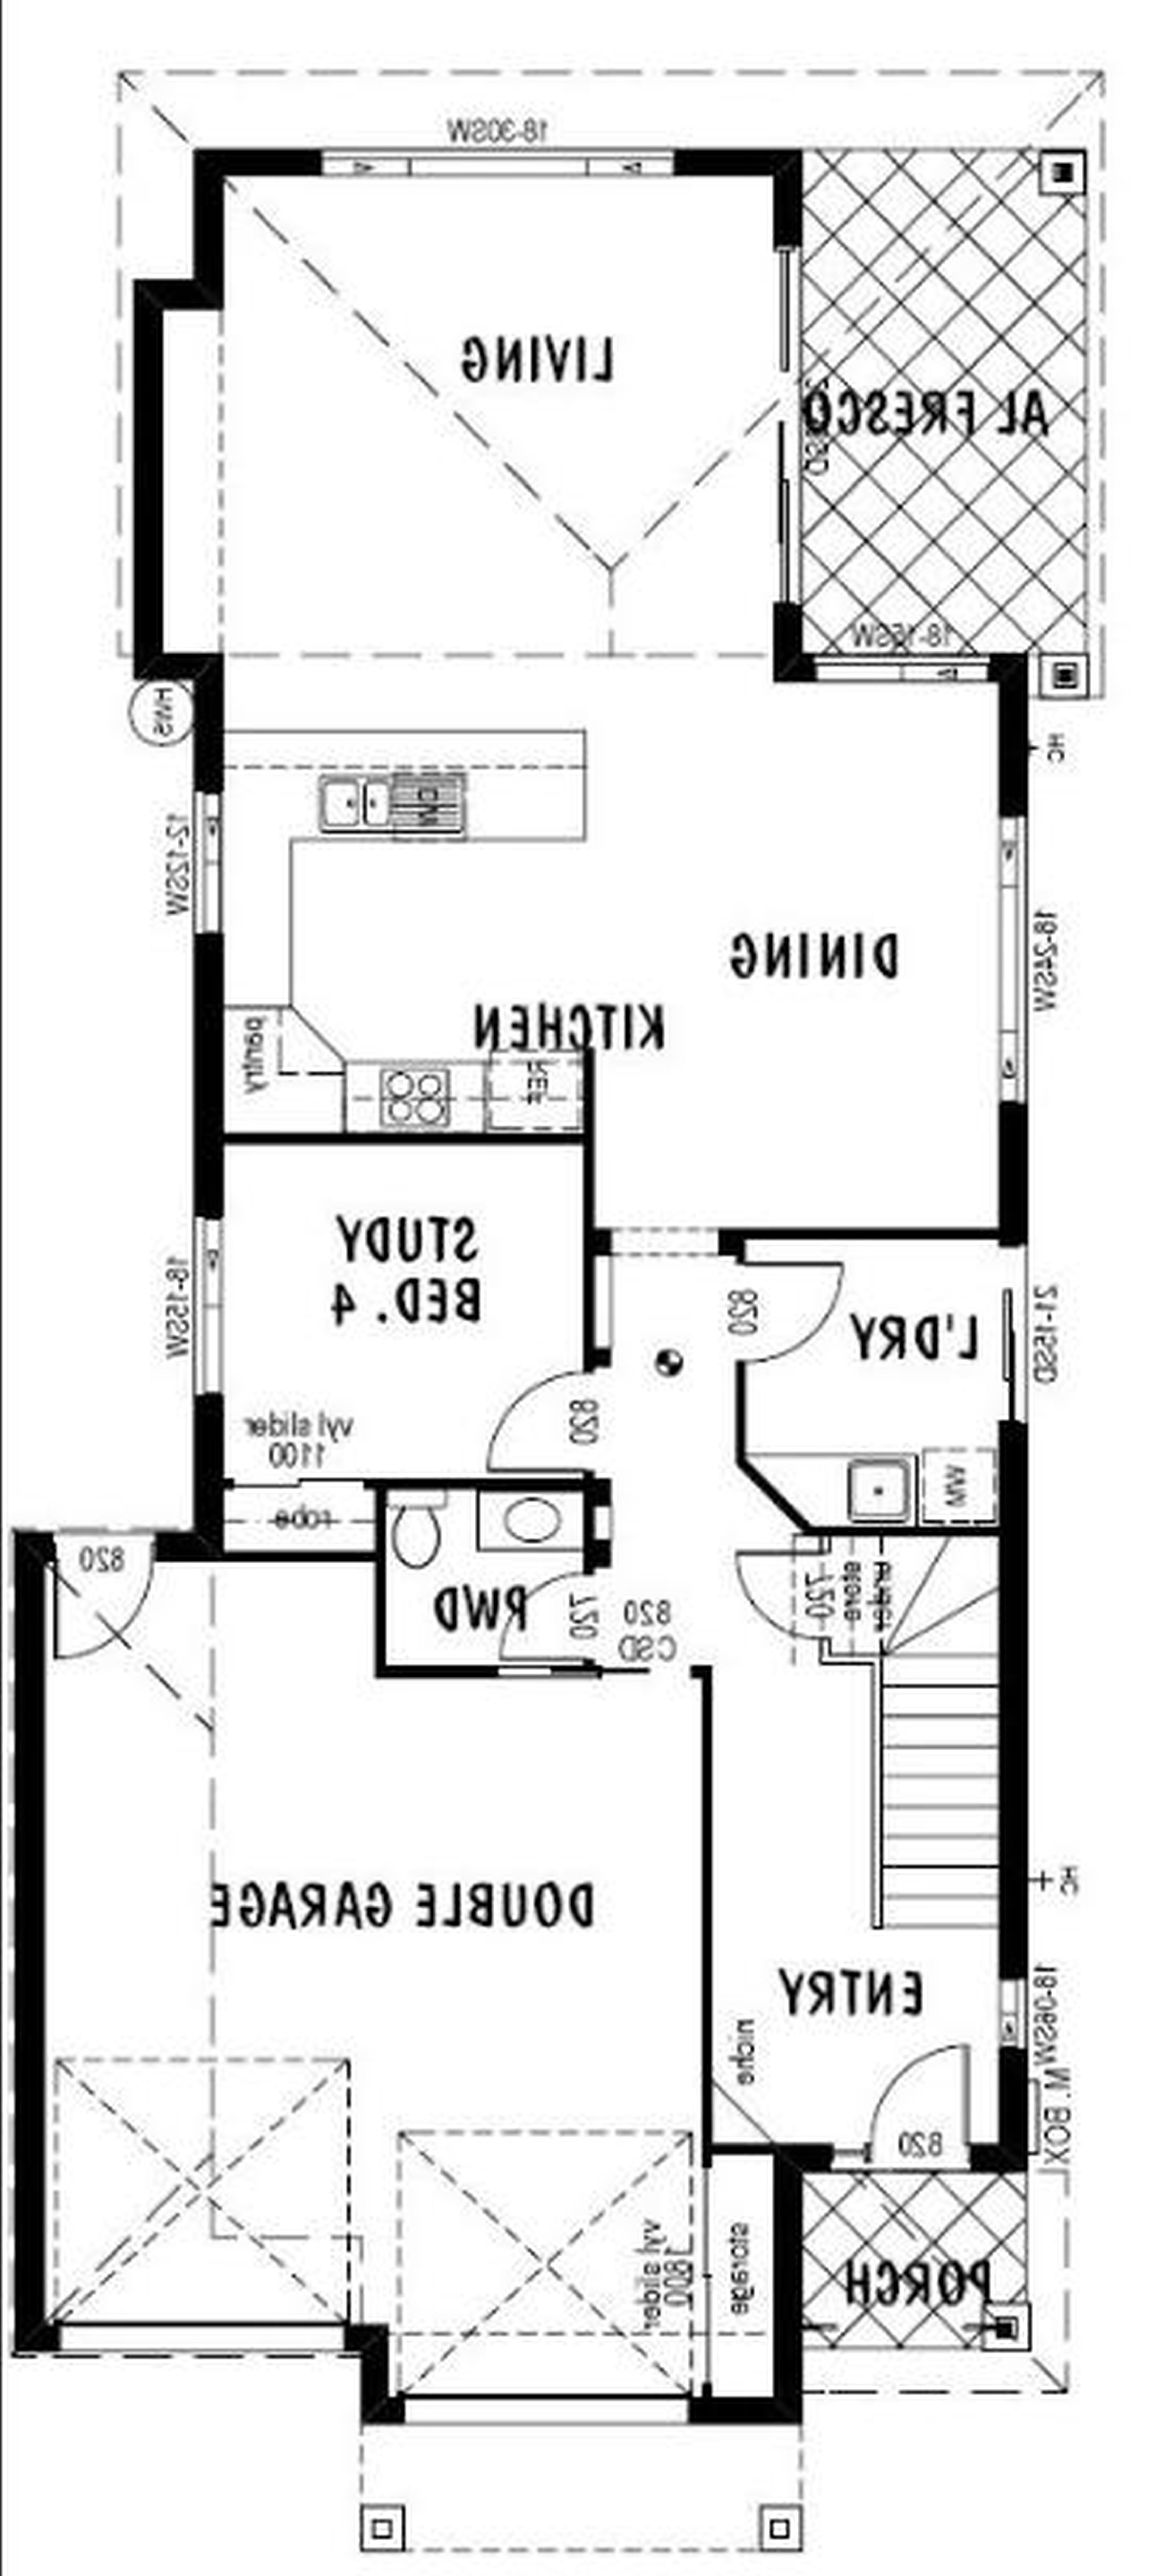 Simple Design Of Small Tropical Apartment Floor Plan Tiny House Floor Plans Apartment Floor Plan House Floor Plans